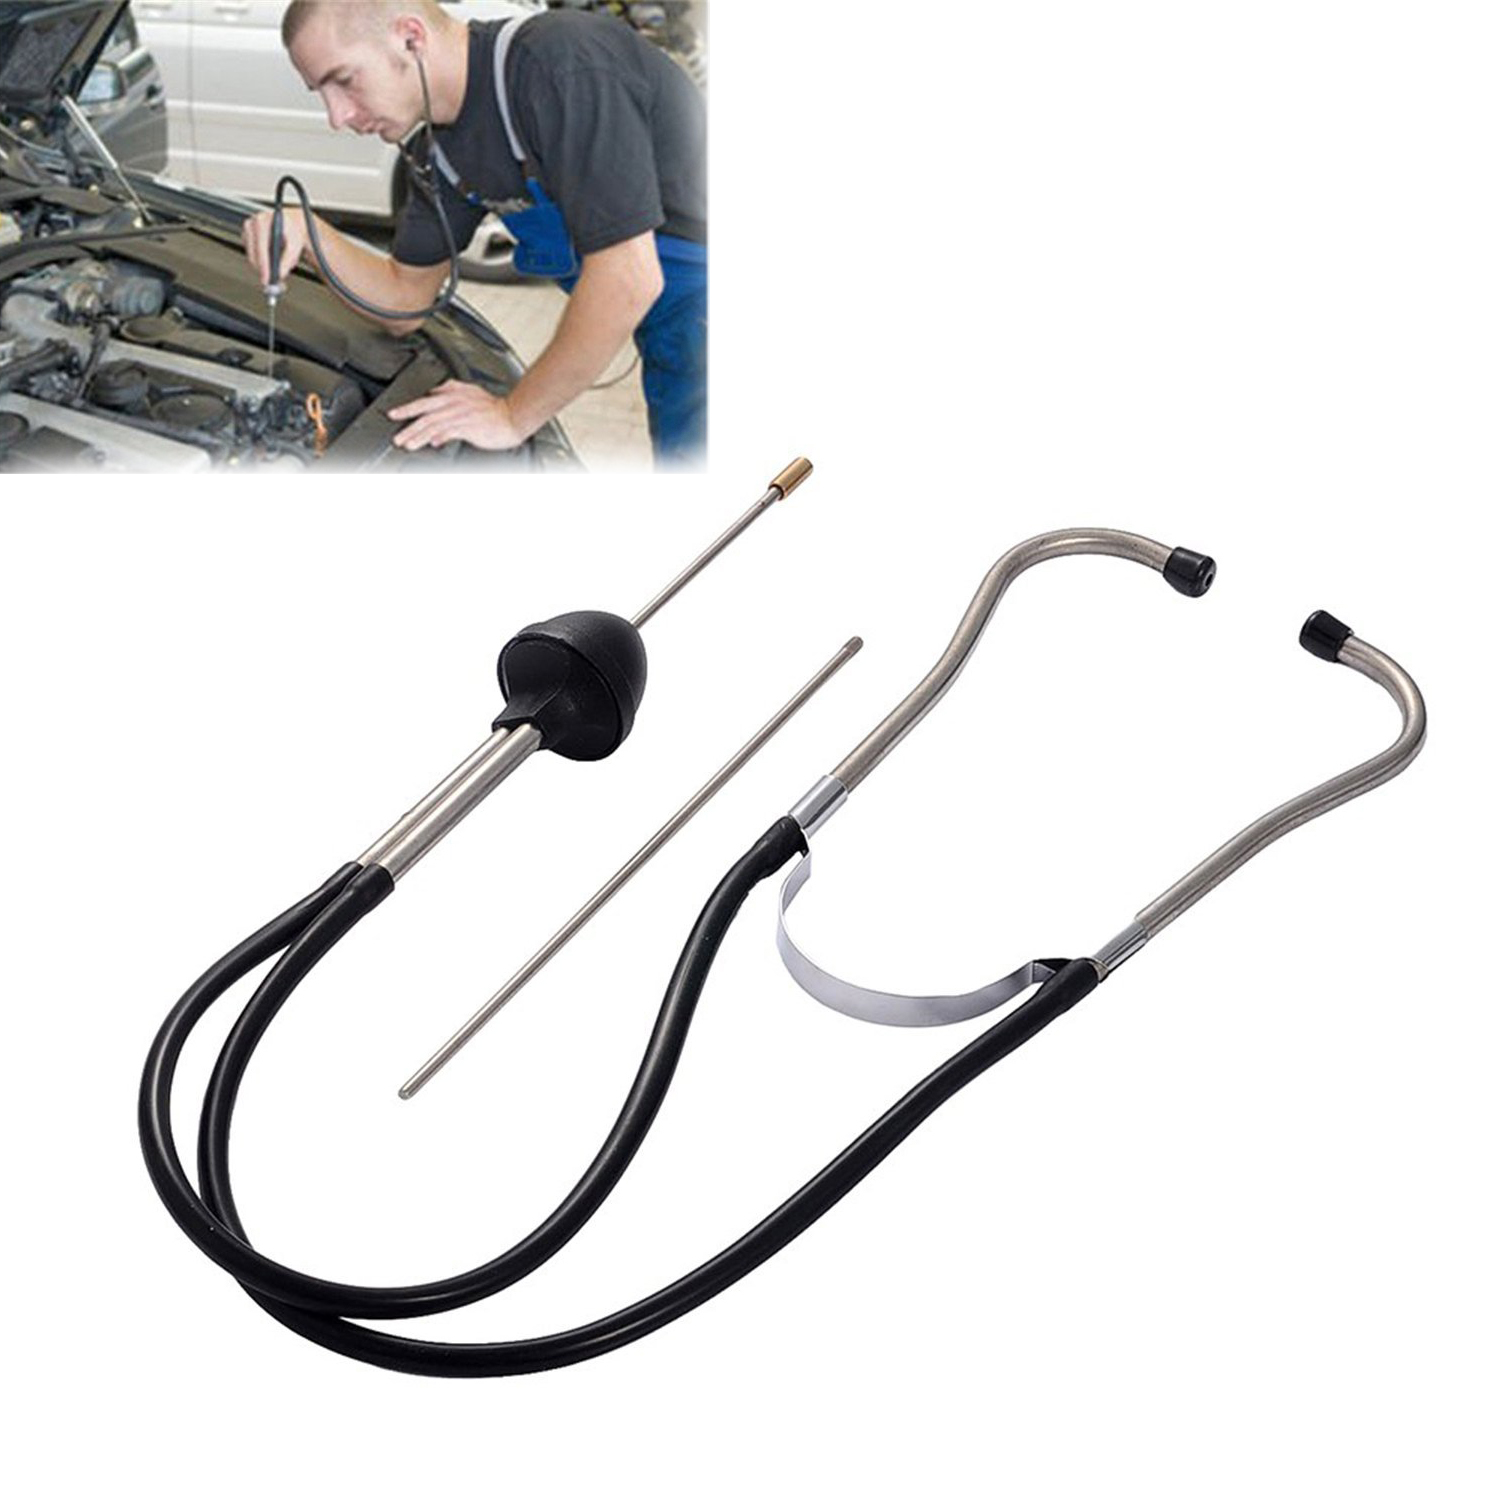 1pcs Auto Mechanics Noise Stethoscope Car Engine Block Diagnostic Tool Cylinder Automotive Hearing Tools For Car